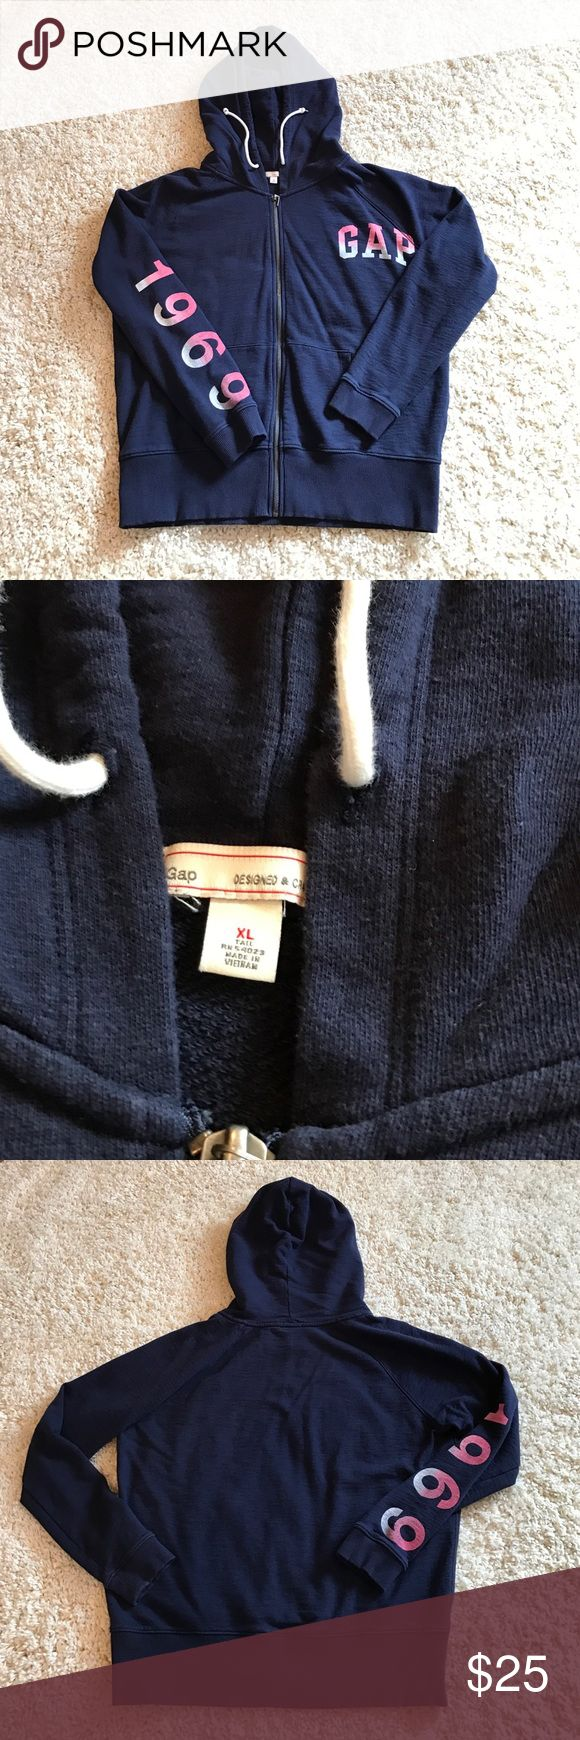 Woman's XL Navy Blue Zip Up Gap Hoodie This is a great navy blue zip up hoodie from the Gap! It is a woman's XL and is in brand new excellent condition! It was never worn but was washed once! It says Gap in an ombré of pink and white at the top left and 1969 in the same ombré on the right arm! It has draw strings on the hoodies as well! It is 💯 cotton! GAP Tops Sweatshirts & Hoodies